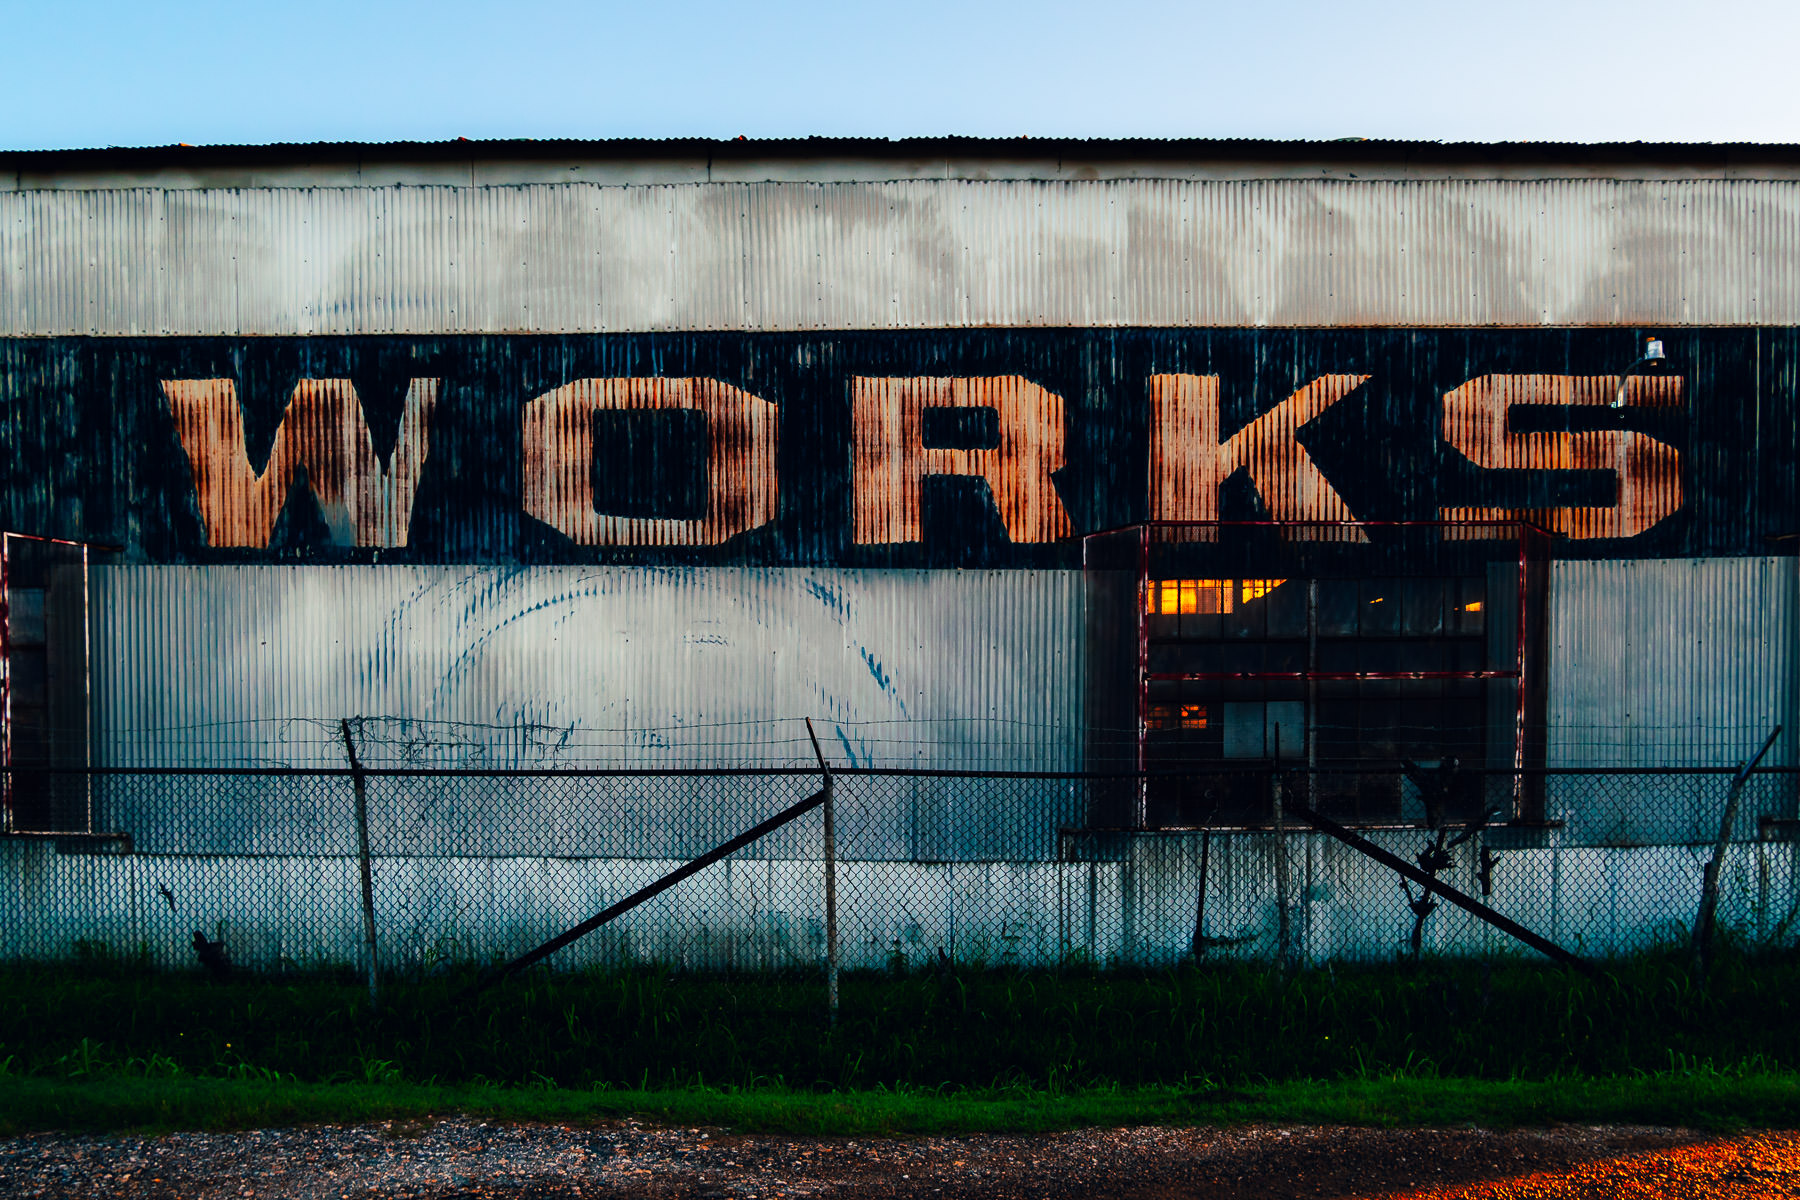 Signage on an industrial building in West Dallas, Texas.